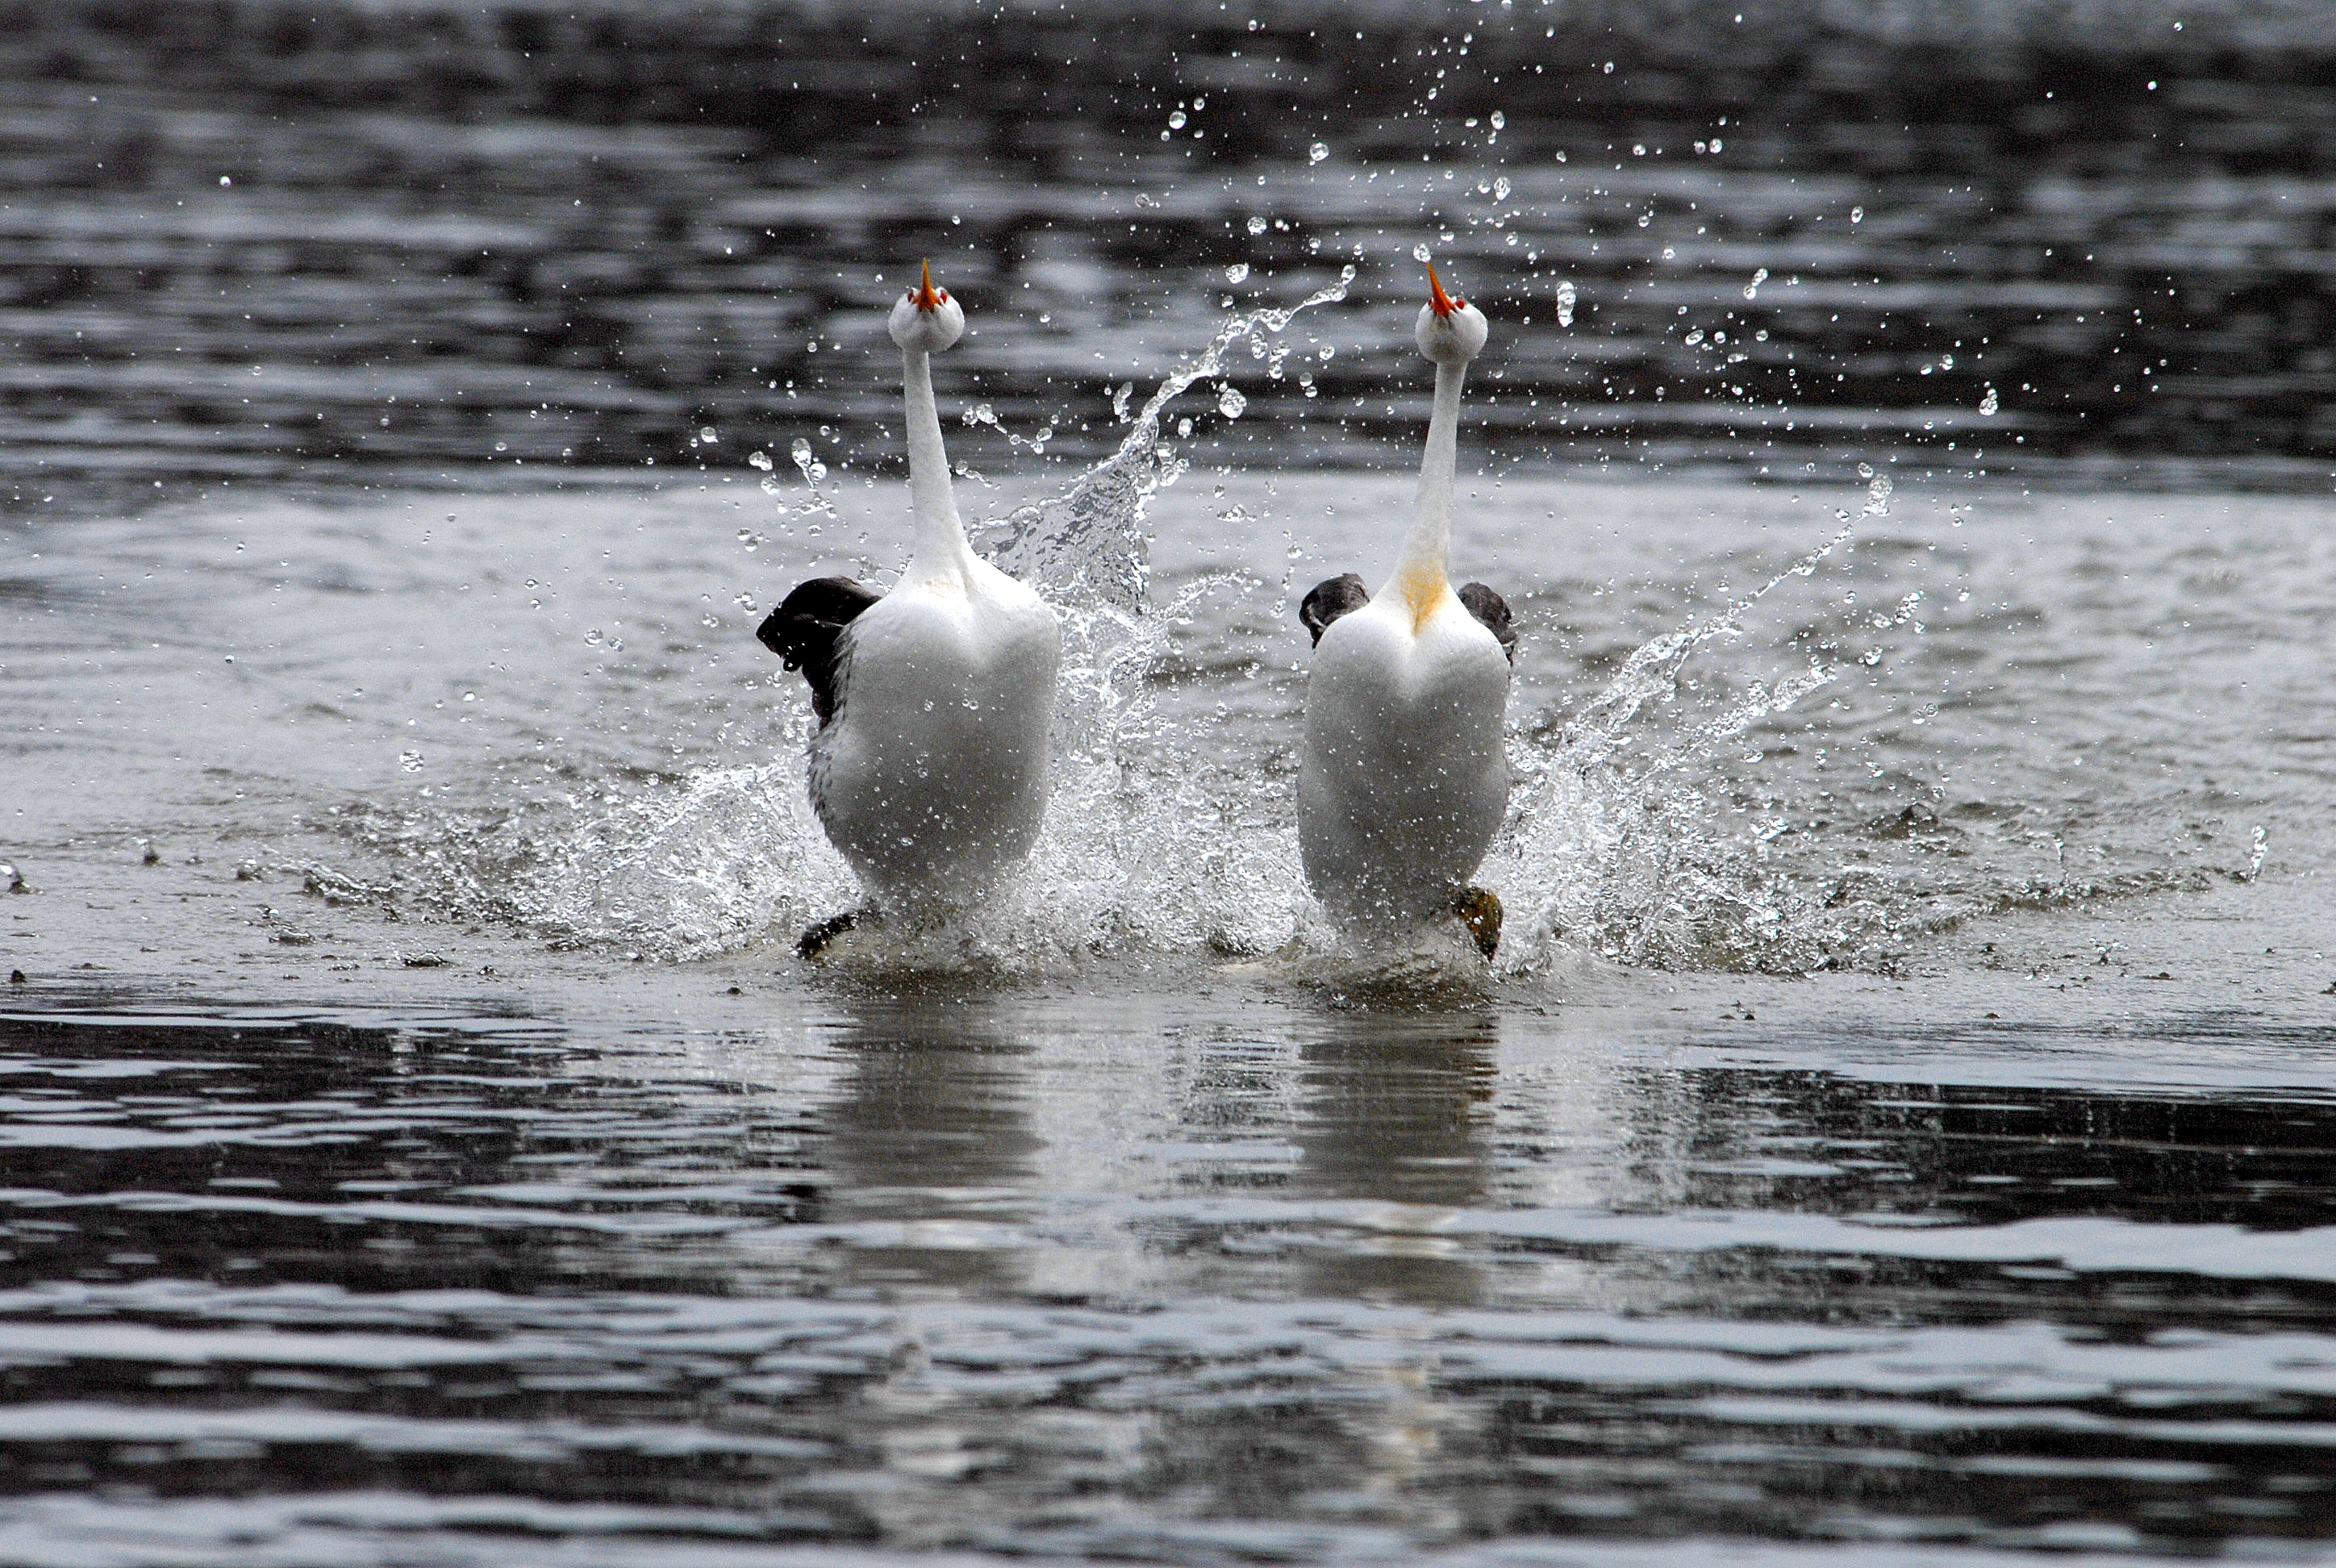 https://i1.wp.com/upload.wikimedia.org/wikipedia/commons/8/80/Clarks_grebes_rushing_%286862203949%29.jpg